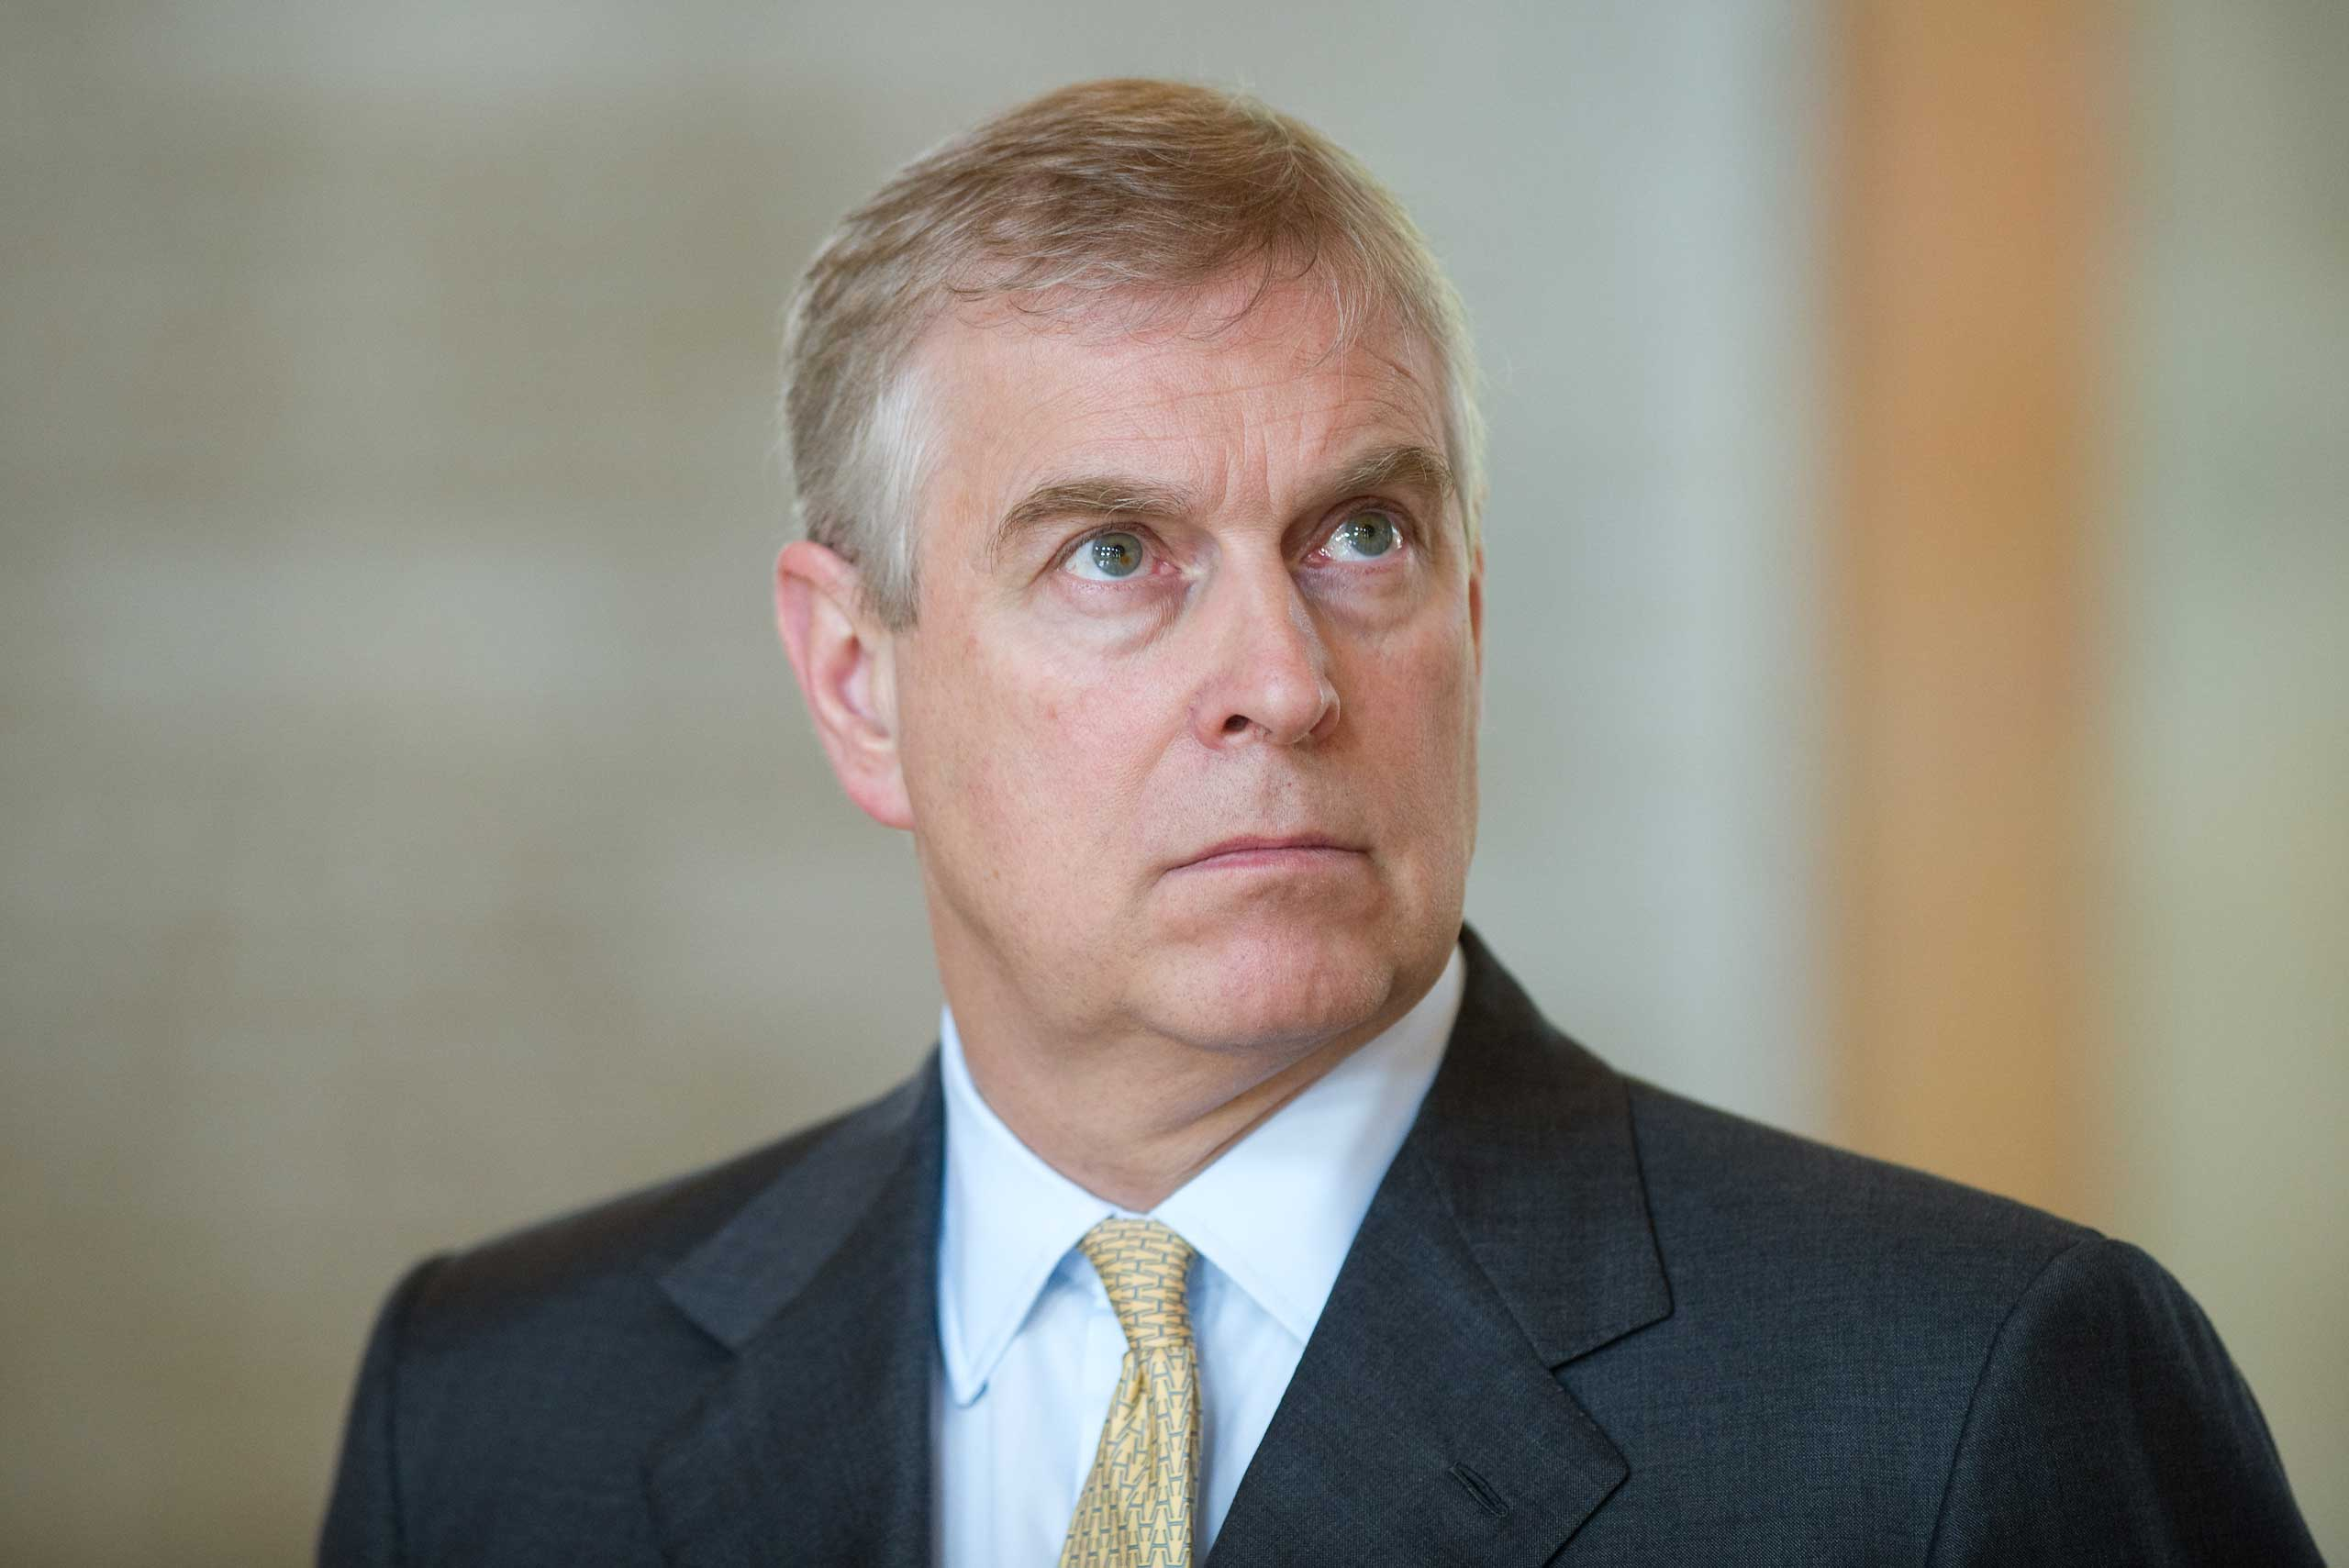 Prince Andrew, Duke of York, visits Georg August University in Göttingen, Germany, on June 3, 2014